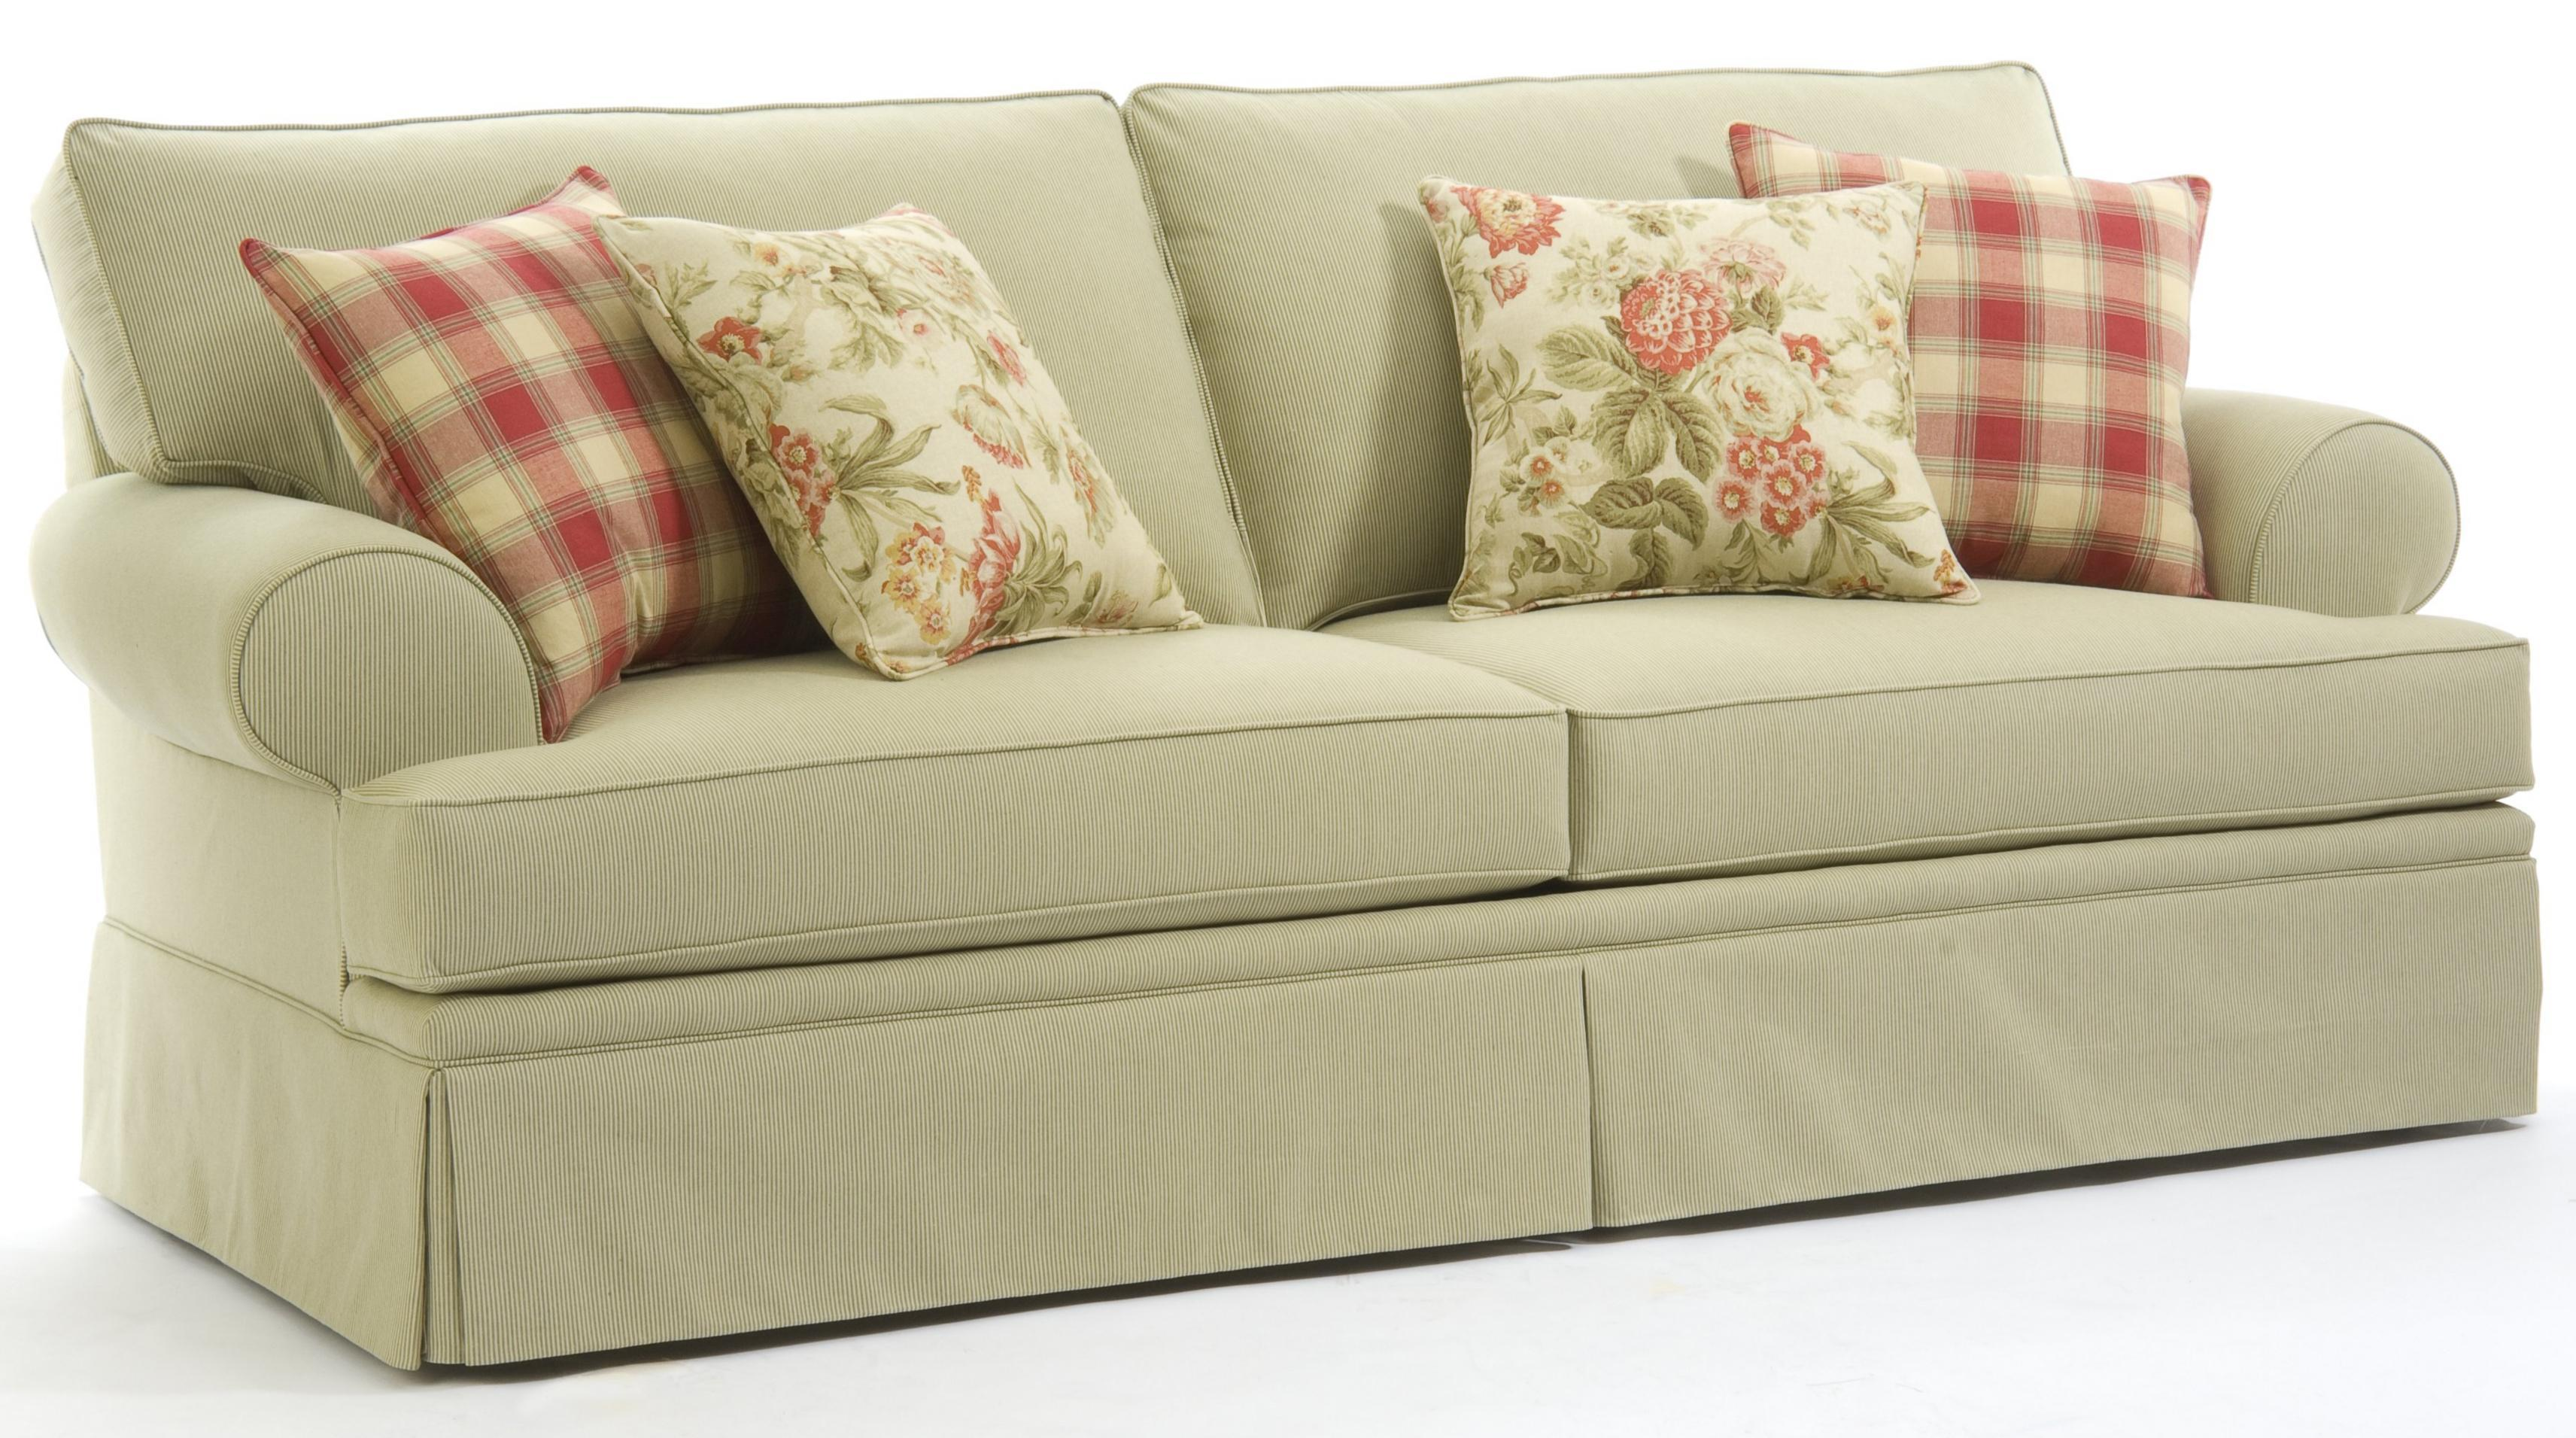 Broyhill Furniture Emily Casual Style Sofa With Rolled Arms And Skirt Covered Base Darvin